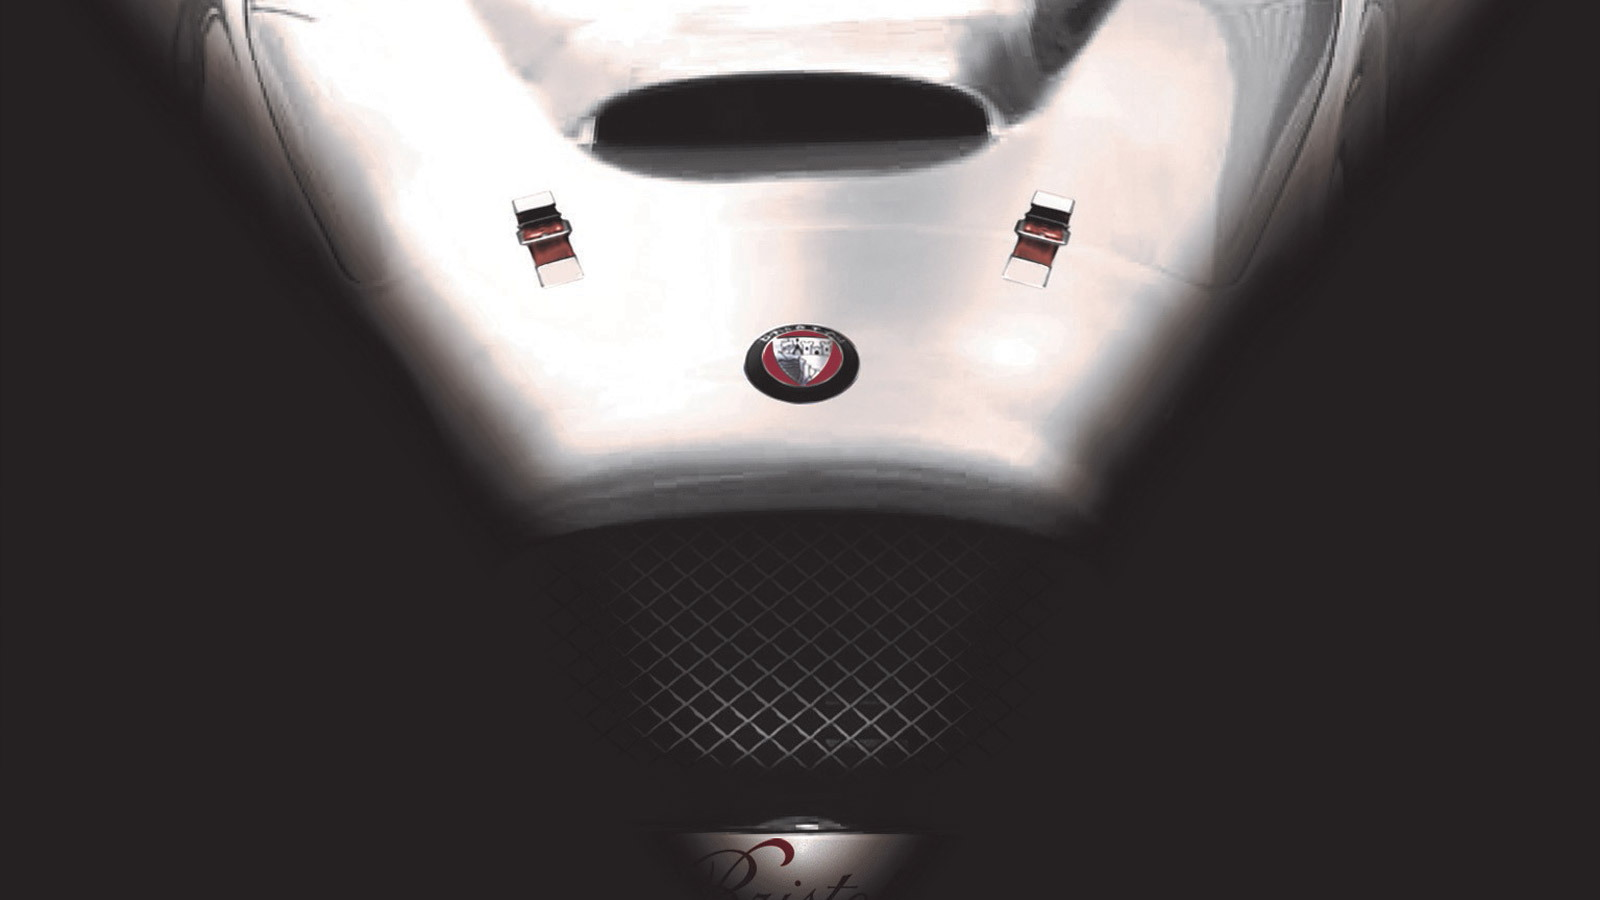 Teaser for Bristol Project Pinnacle sports car